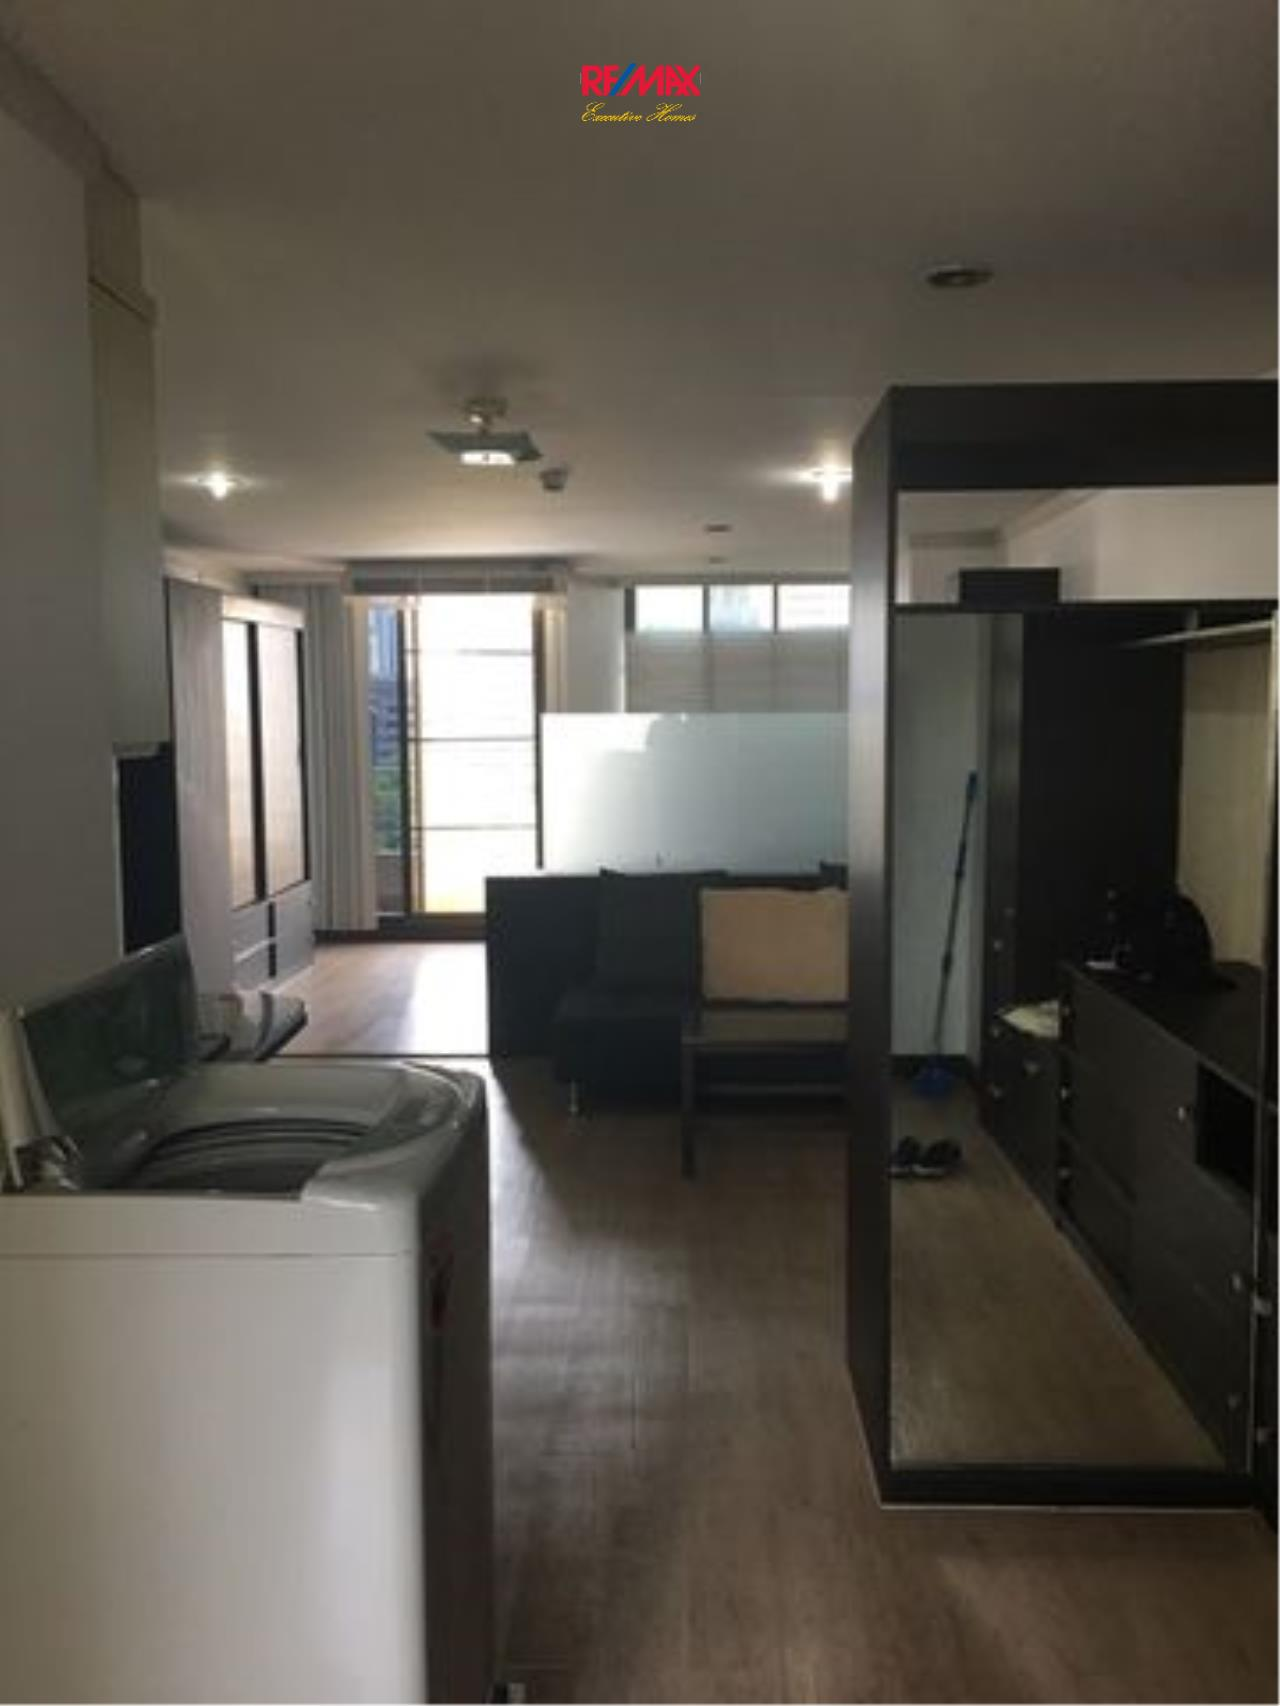 RE/MAX Executive Homes Agency's Spacious 1 Bedroom for Rent Supalai Place 39 1